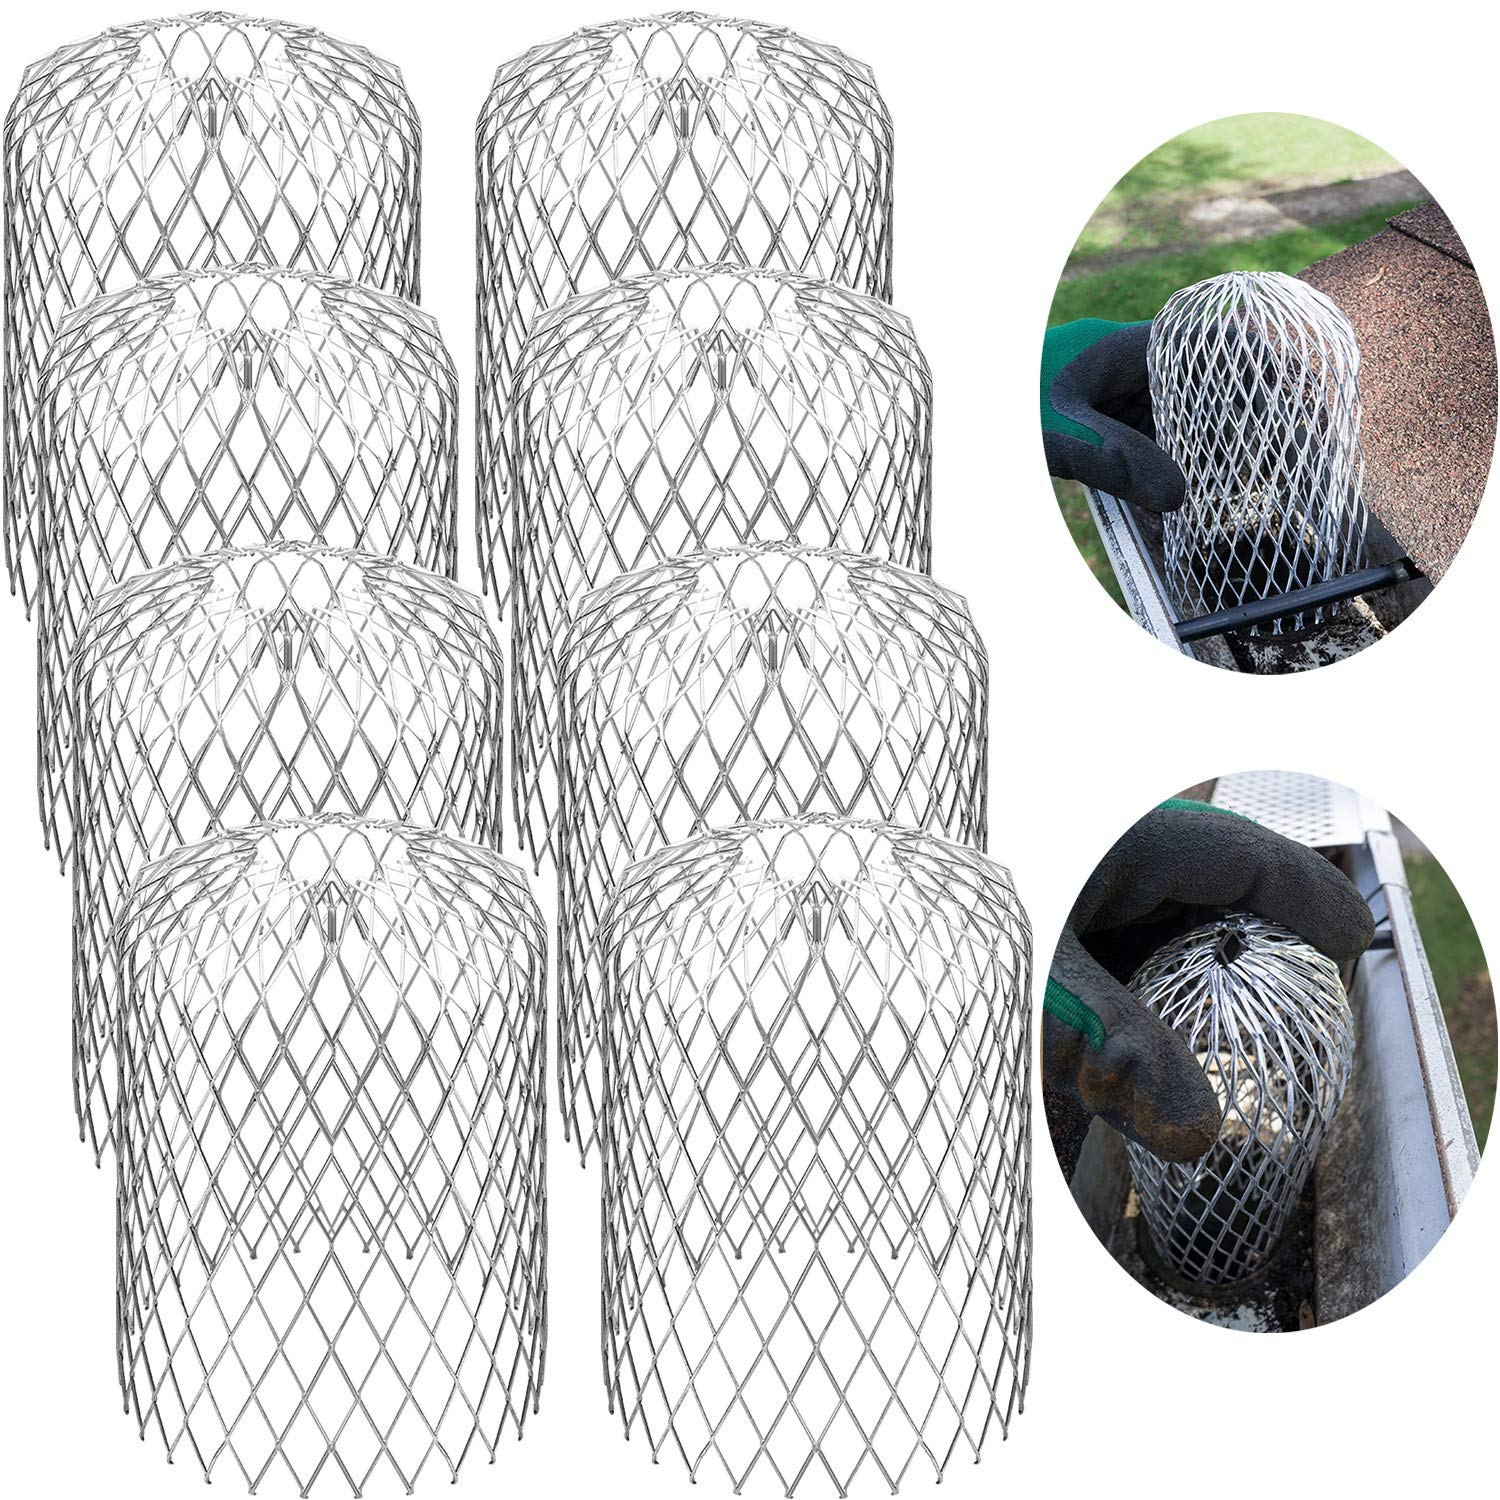 Gutter Guard Strainer 3 Inch Mesh Gutter Downspout Guard for Leaf and Rain Filter Gutter Screen Covers (8 Pack) by Boao